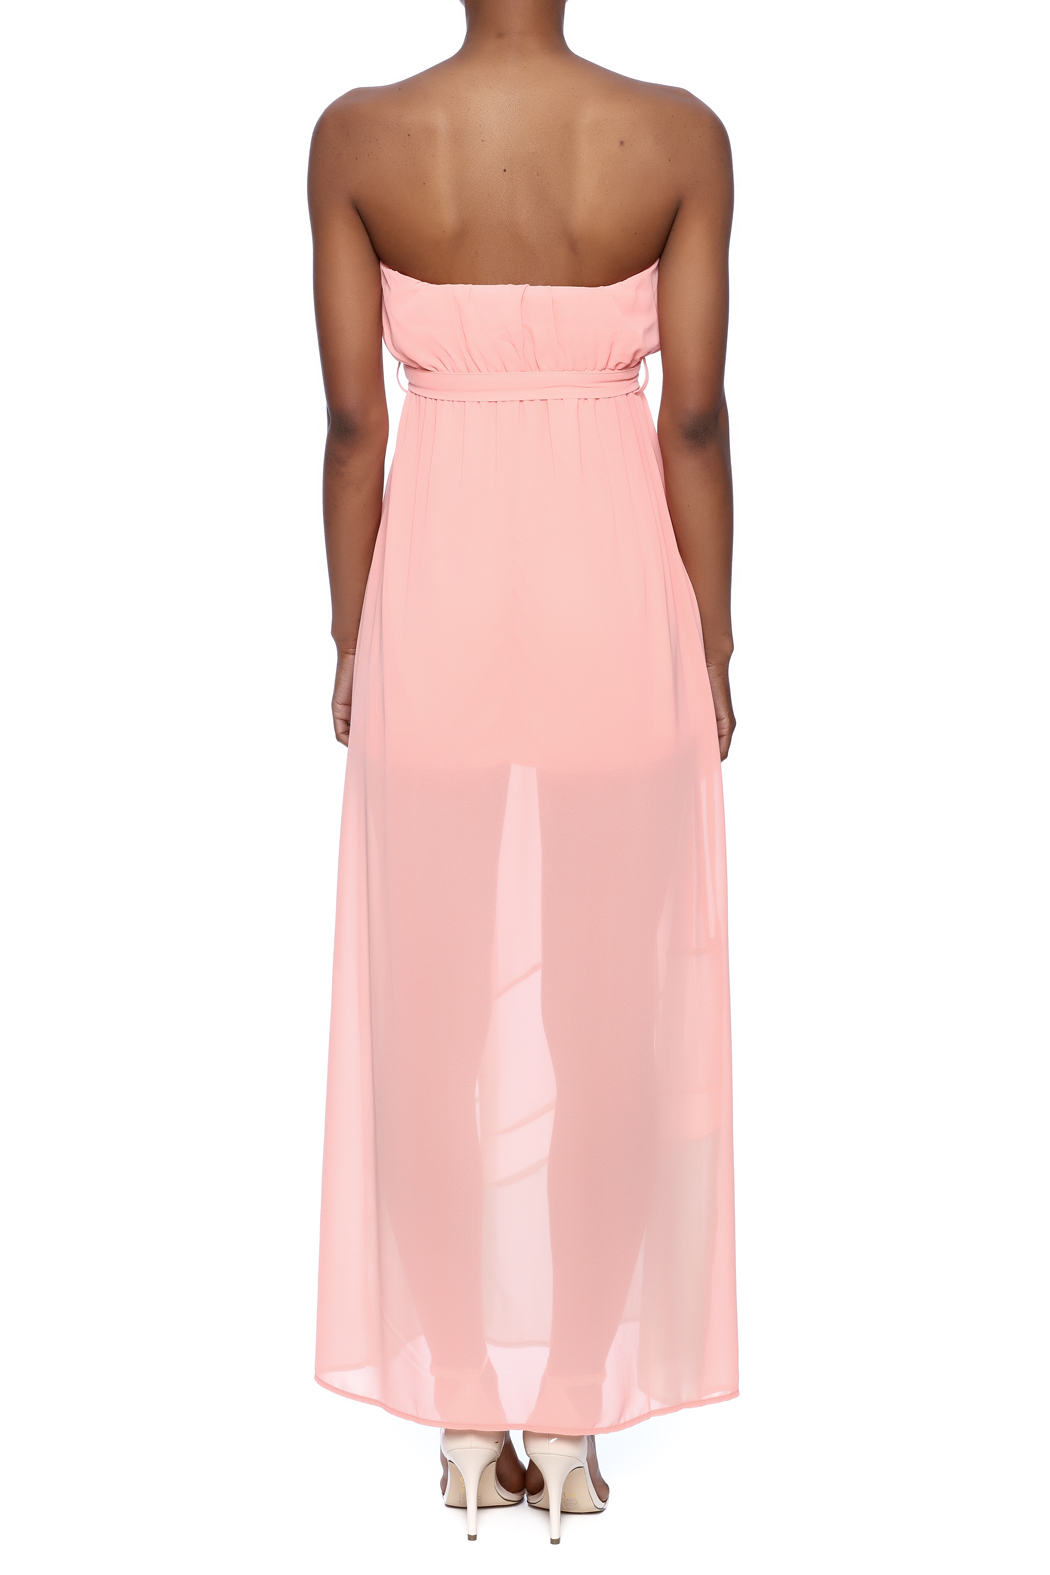 Ya Los Angeles Strapless Maxi Dress - Back Cropped Image